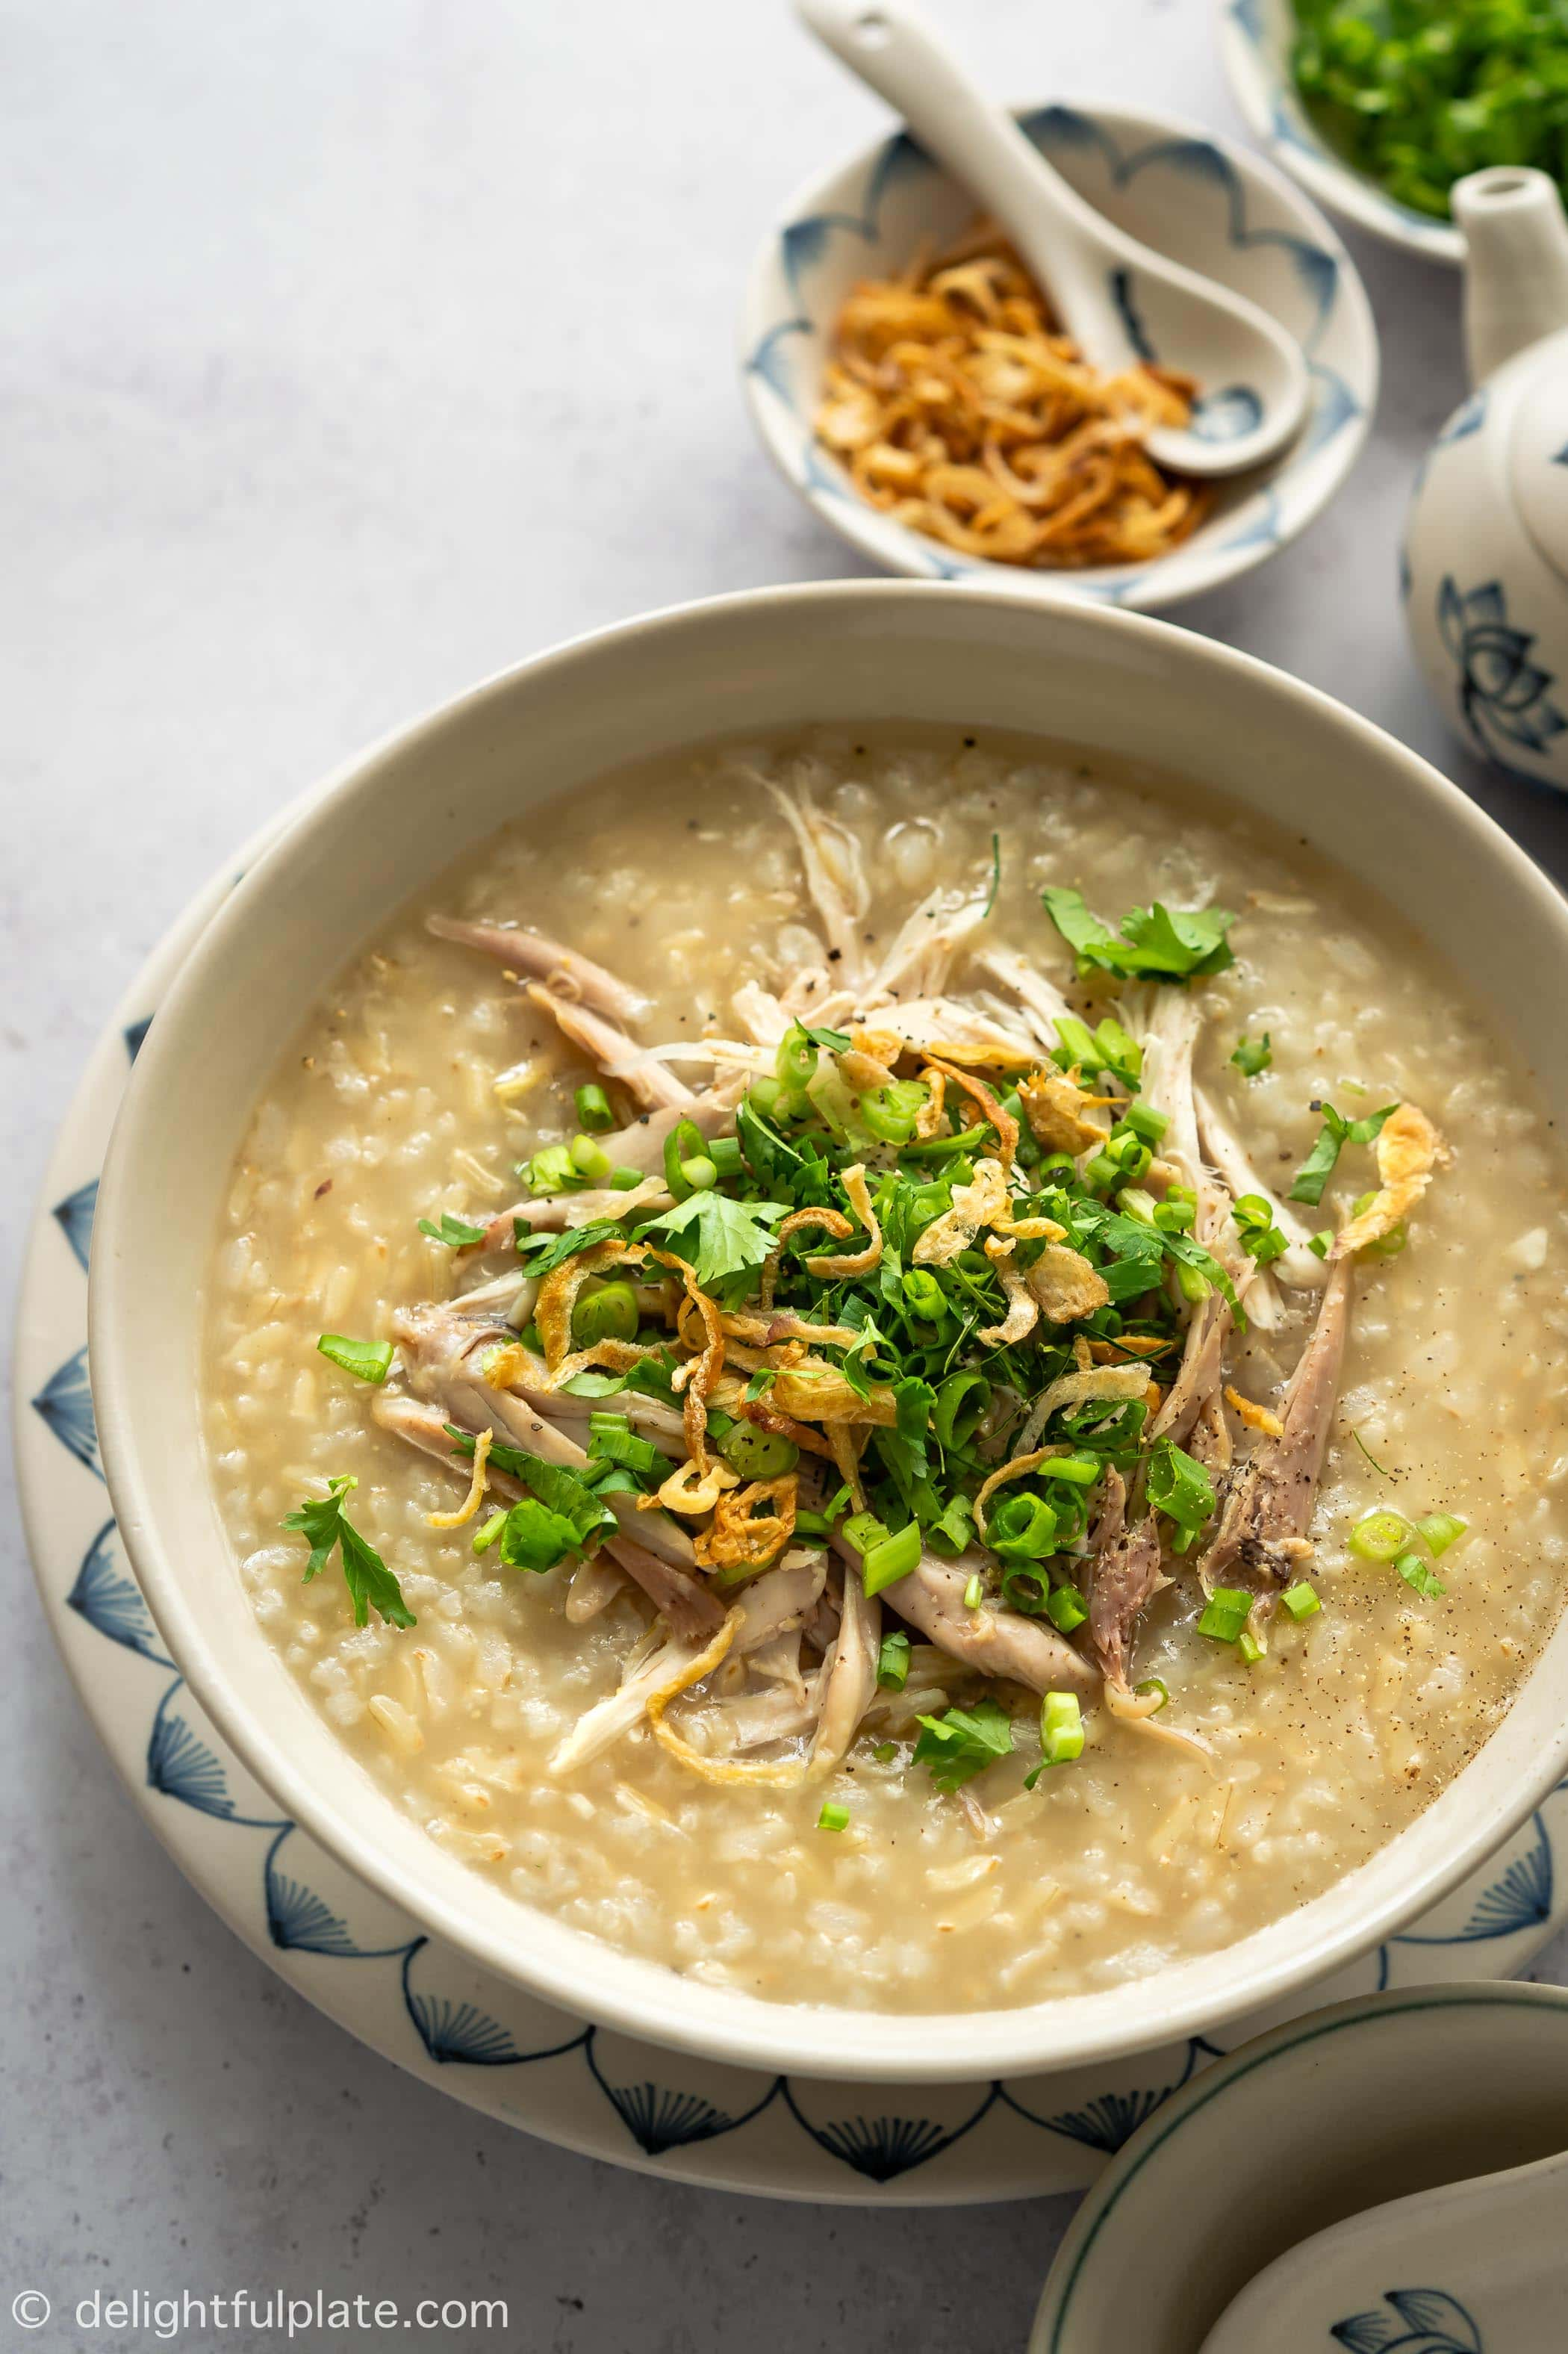 This Chicken Congee with Brown Rice is a classic Vietnamese congee made in a healthier and more flavorful way. Cooking this congee with a pressure cooker such as an Instant Pot yields a perfect creamy texture in a short amount of time. Very easy and tasty!